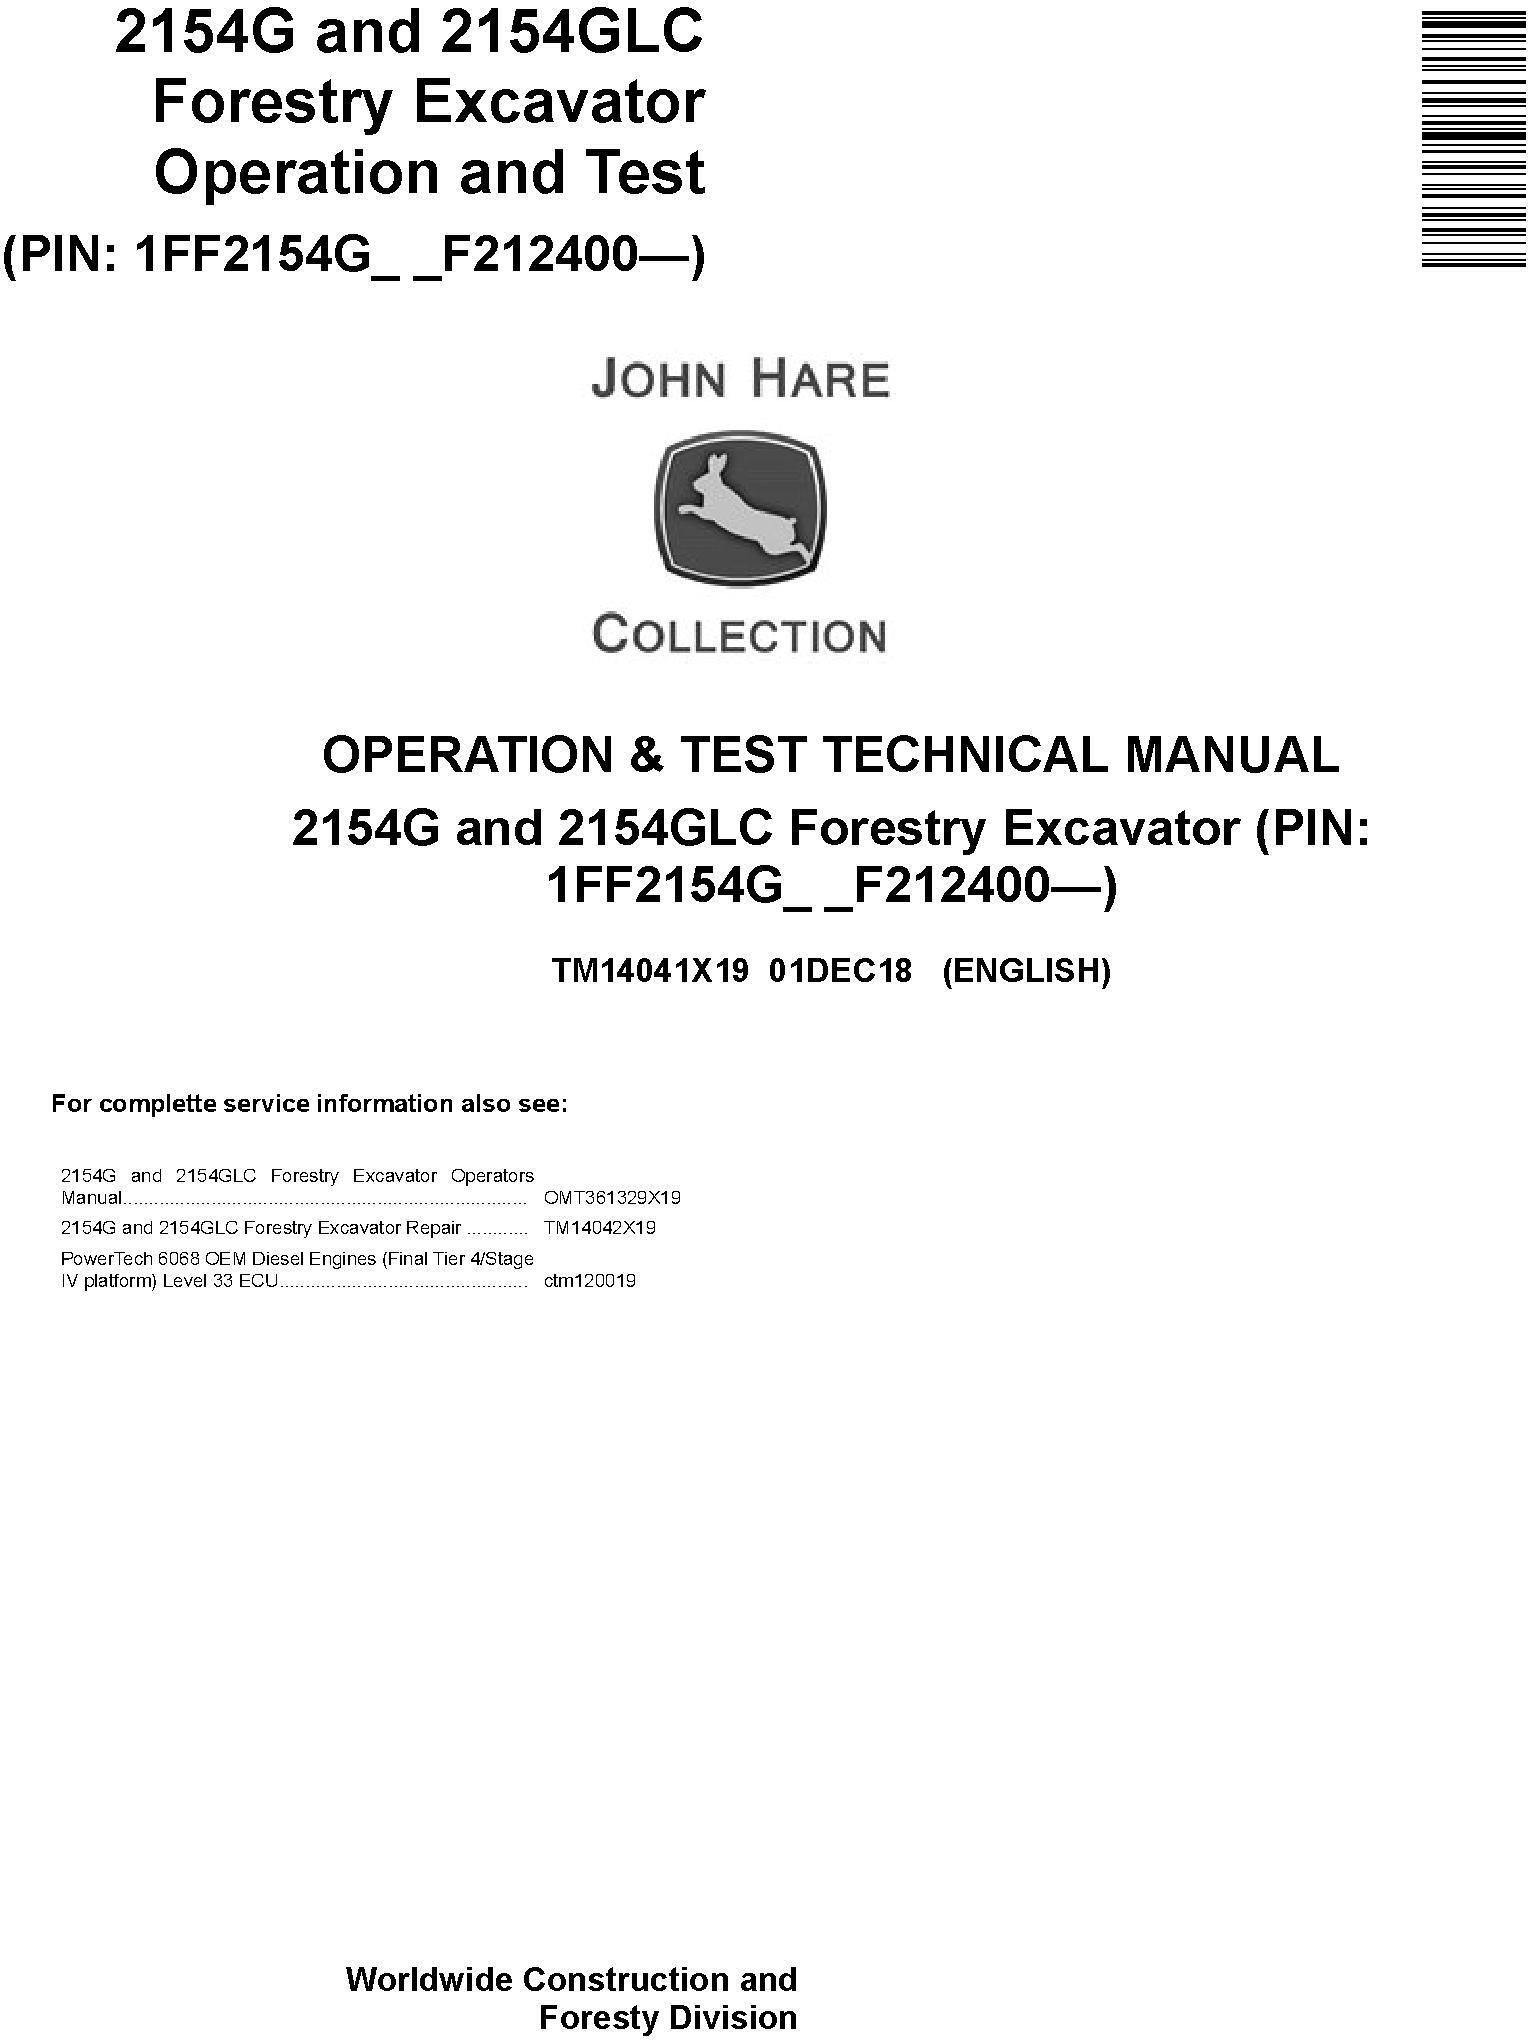 John Deere 2154G, 2154GLC (SN. F212400-) Forestry Excavator Diagnostic Technical Manual (TM14041X19) - 19210